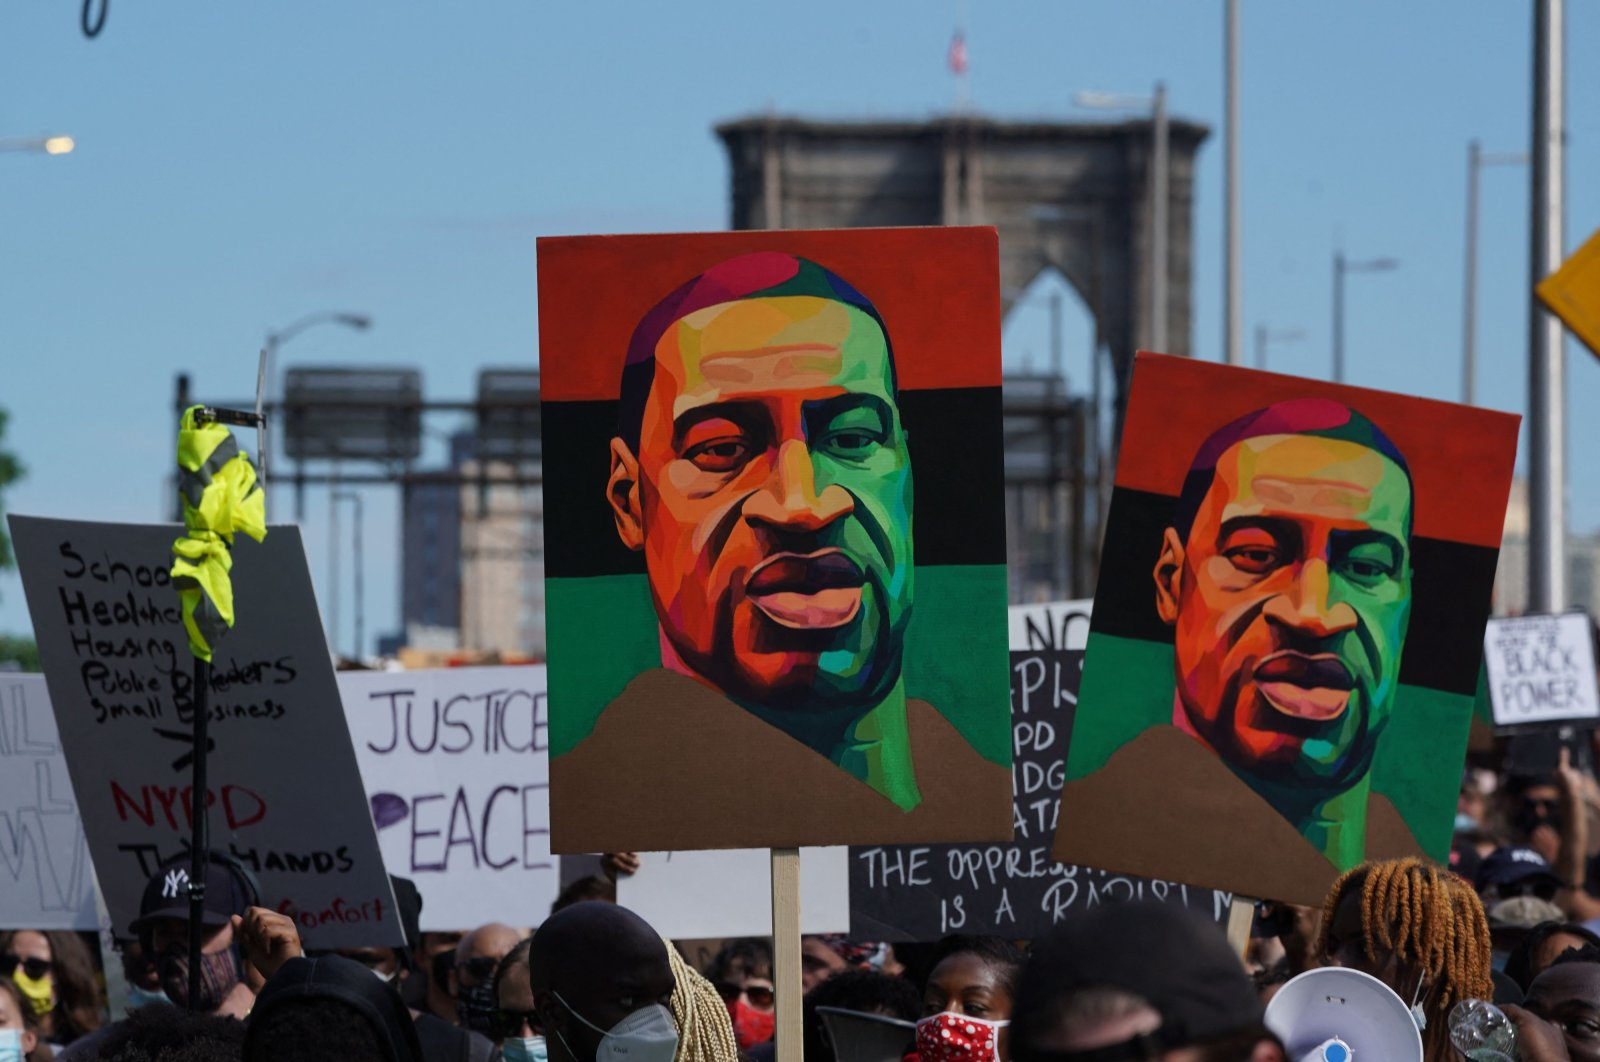 Protesters march across the Brooklyn Bridge over the death of George Floyd in the custody of Minneapolis police officers, during a Juneteenth rally in New York, U.S., June 19, 2020. (AFP Photo)